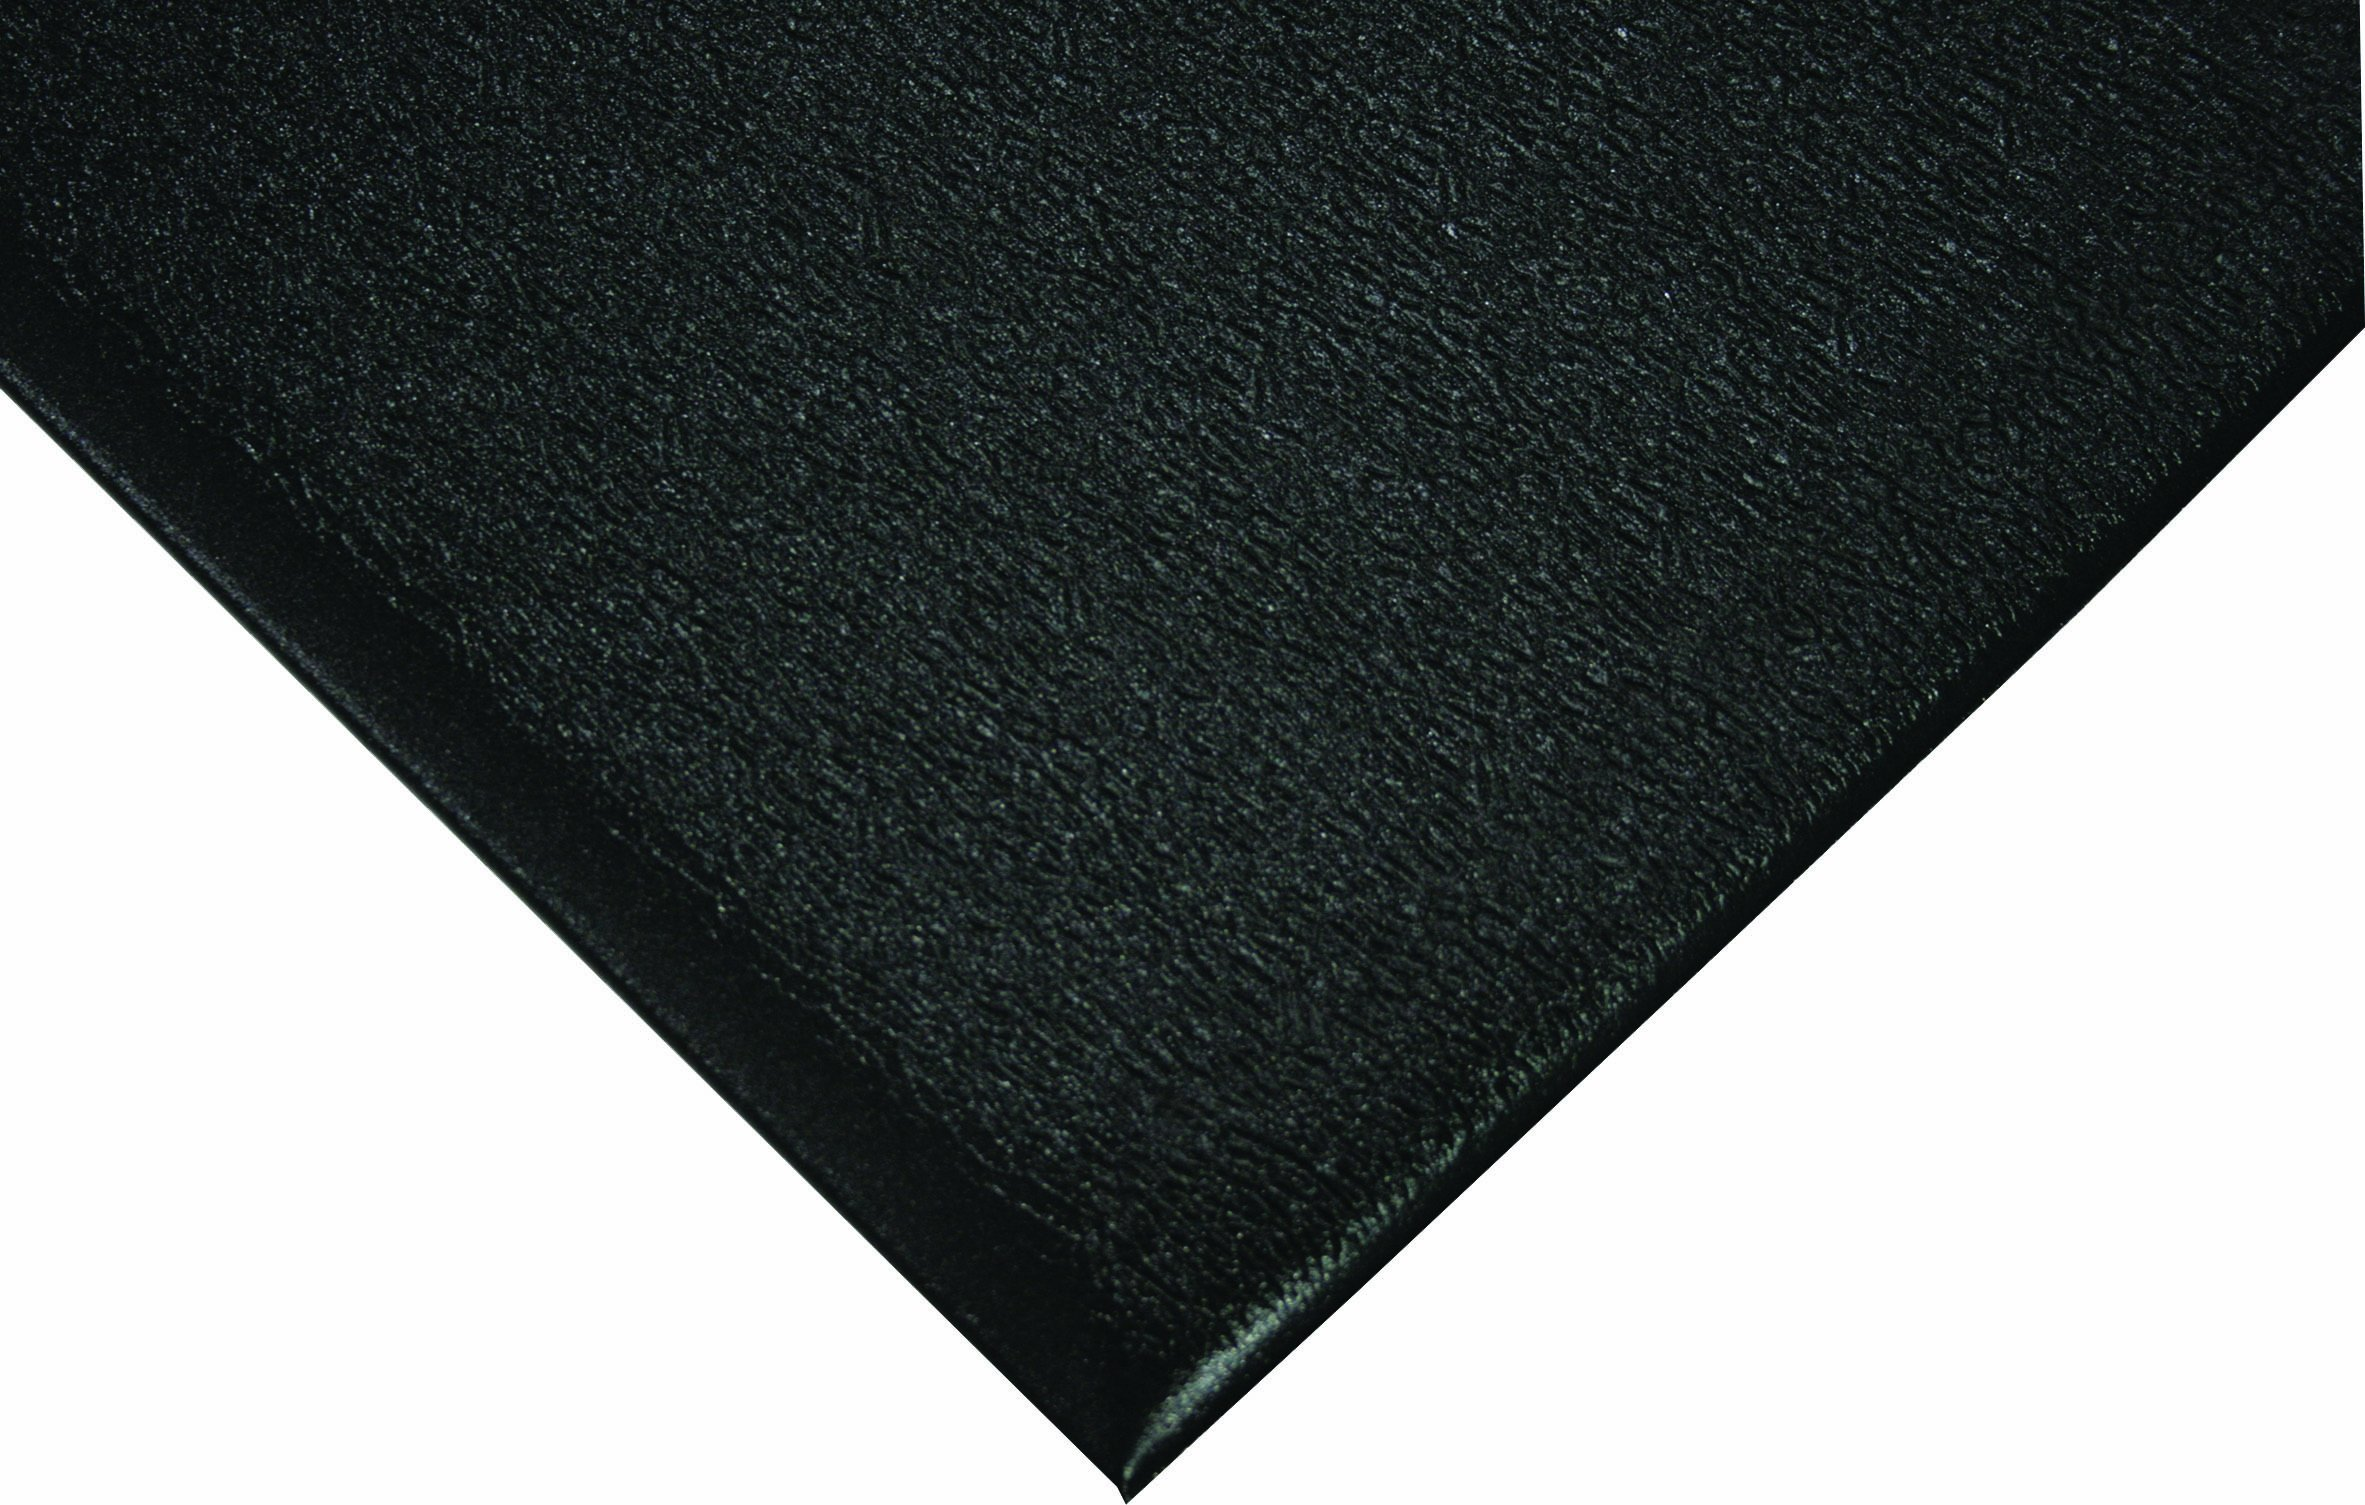 Wearwell PVC 427 SoftStep Light Duty Anti-Fatigue Mat, for Dry Areas, 3' Width x 5' Length x 3/8'' Thickness, Black